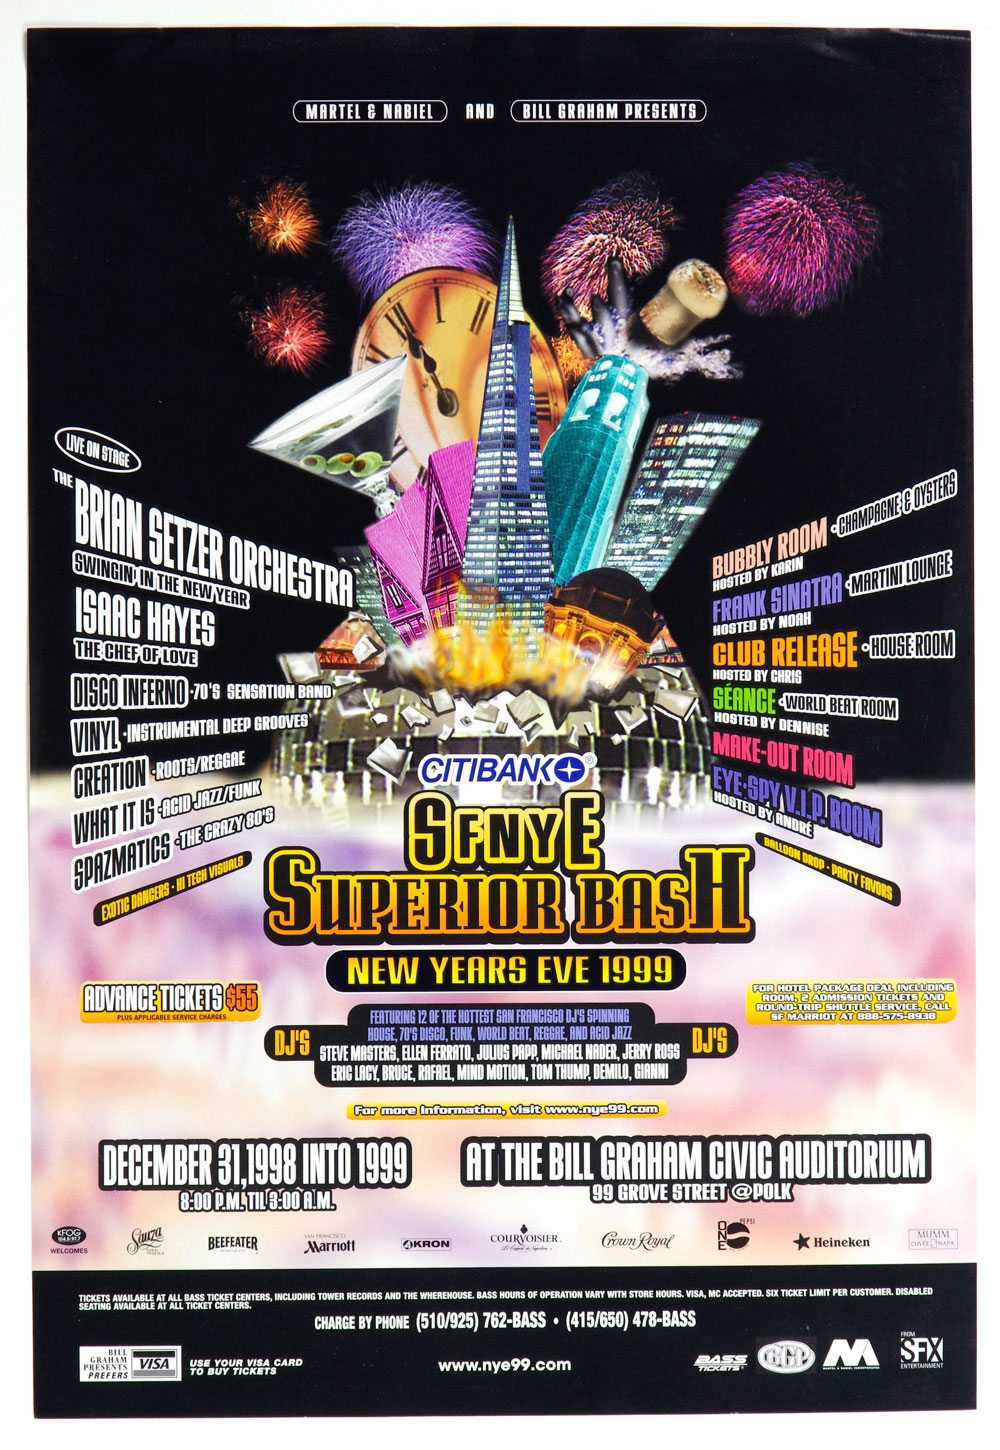 Bill Graham Presents 1999 San Francisco New Years Eve Events Poster